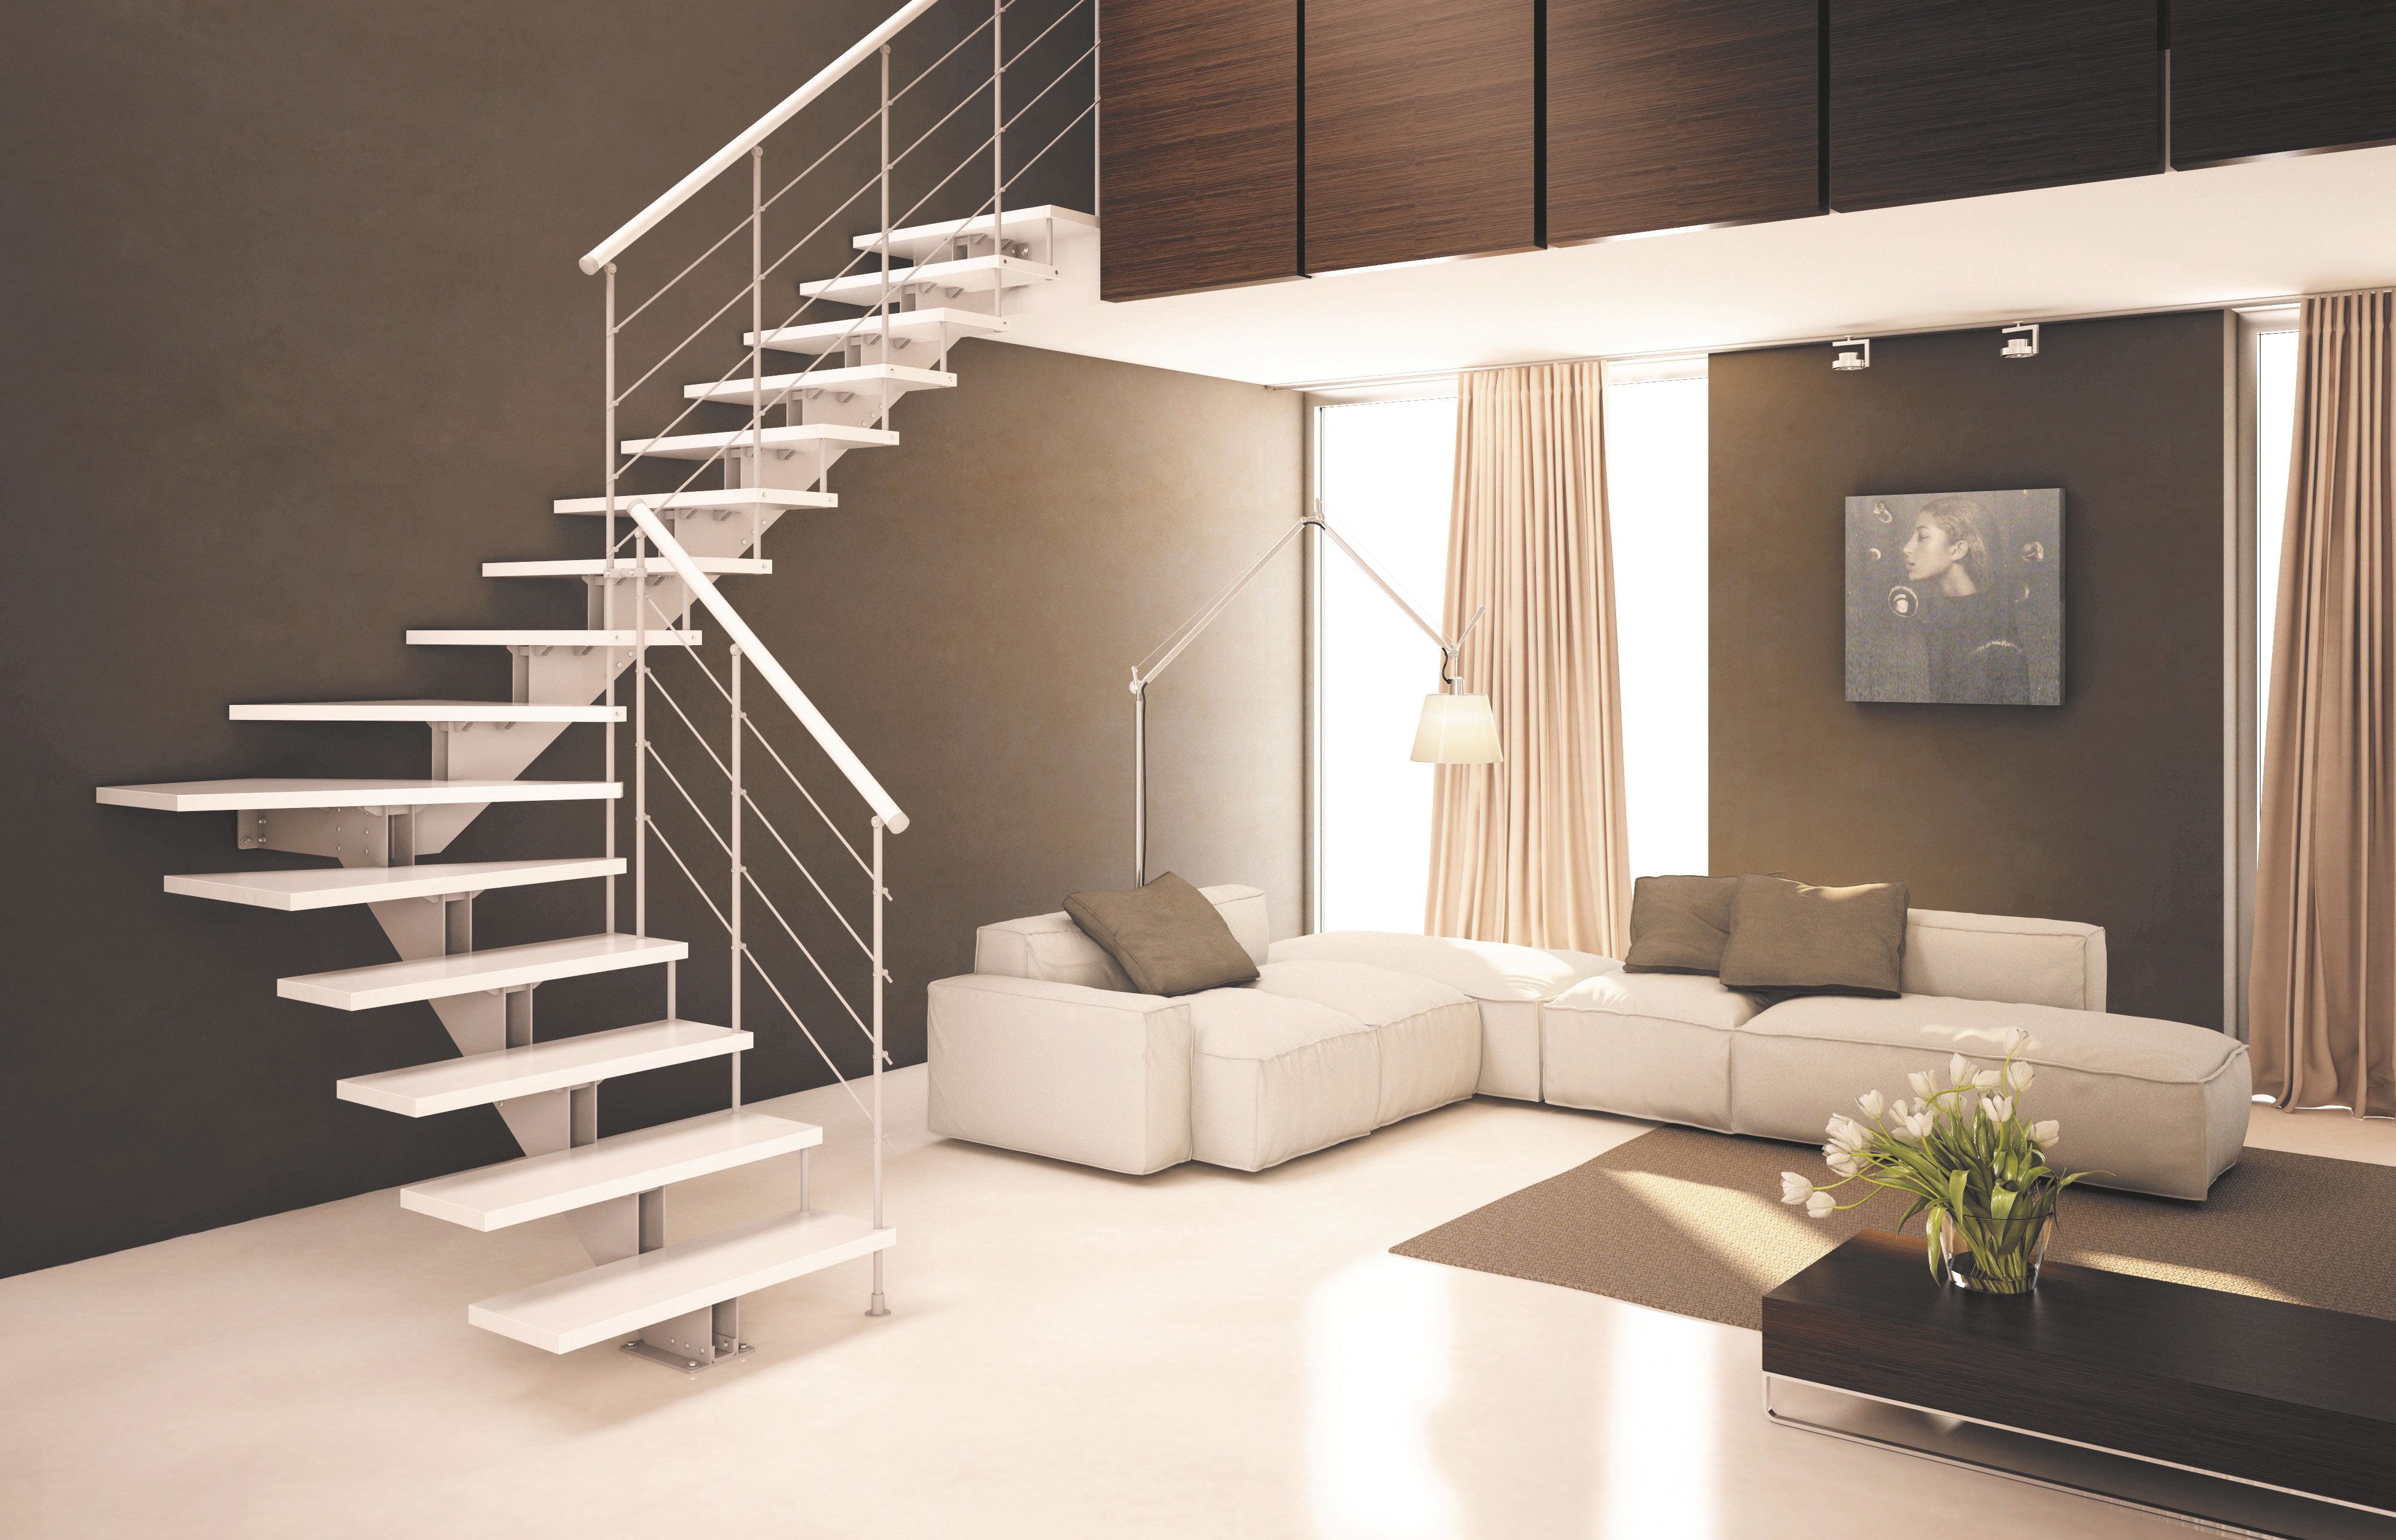 Legno Per Scale Interne.Wood Stairs Design Ideas Feel Tl Cast Stairs Range